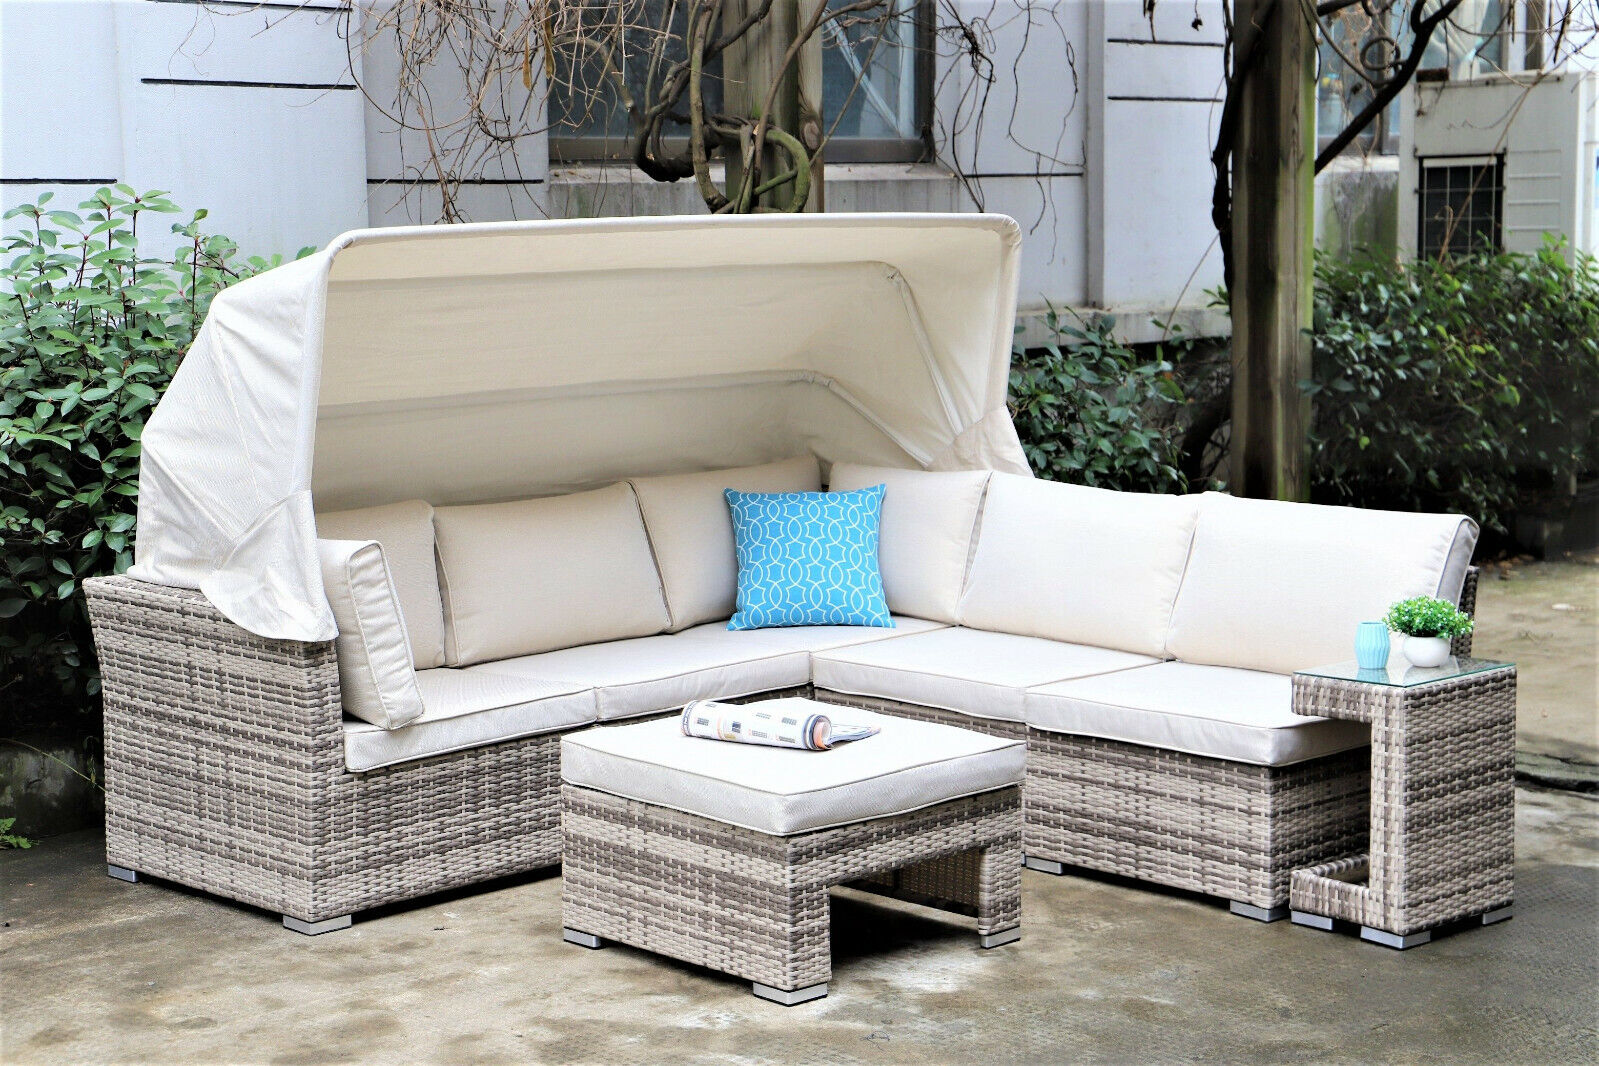 Picture of: Alfresco Champagne Sapphire Canopy Sofa Set With Footstool And Side Table Ebay